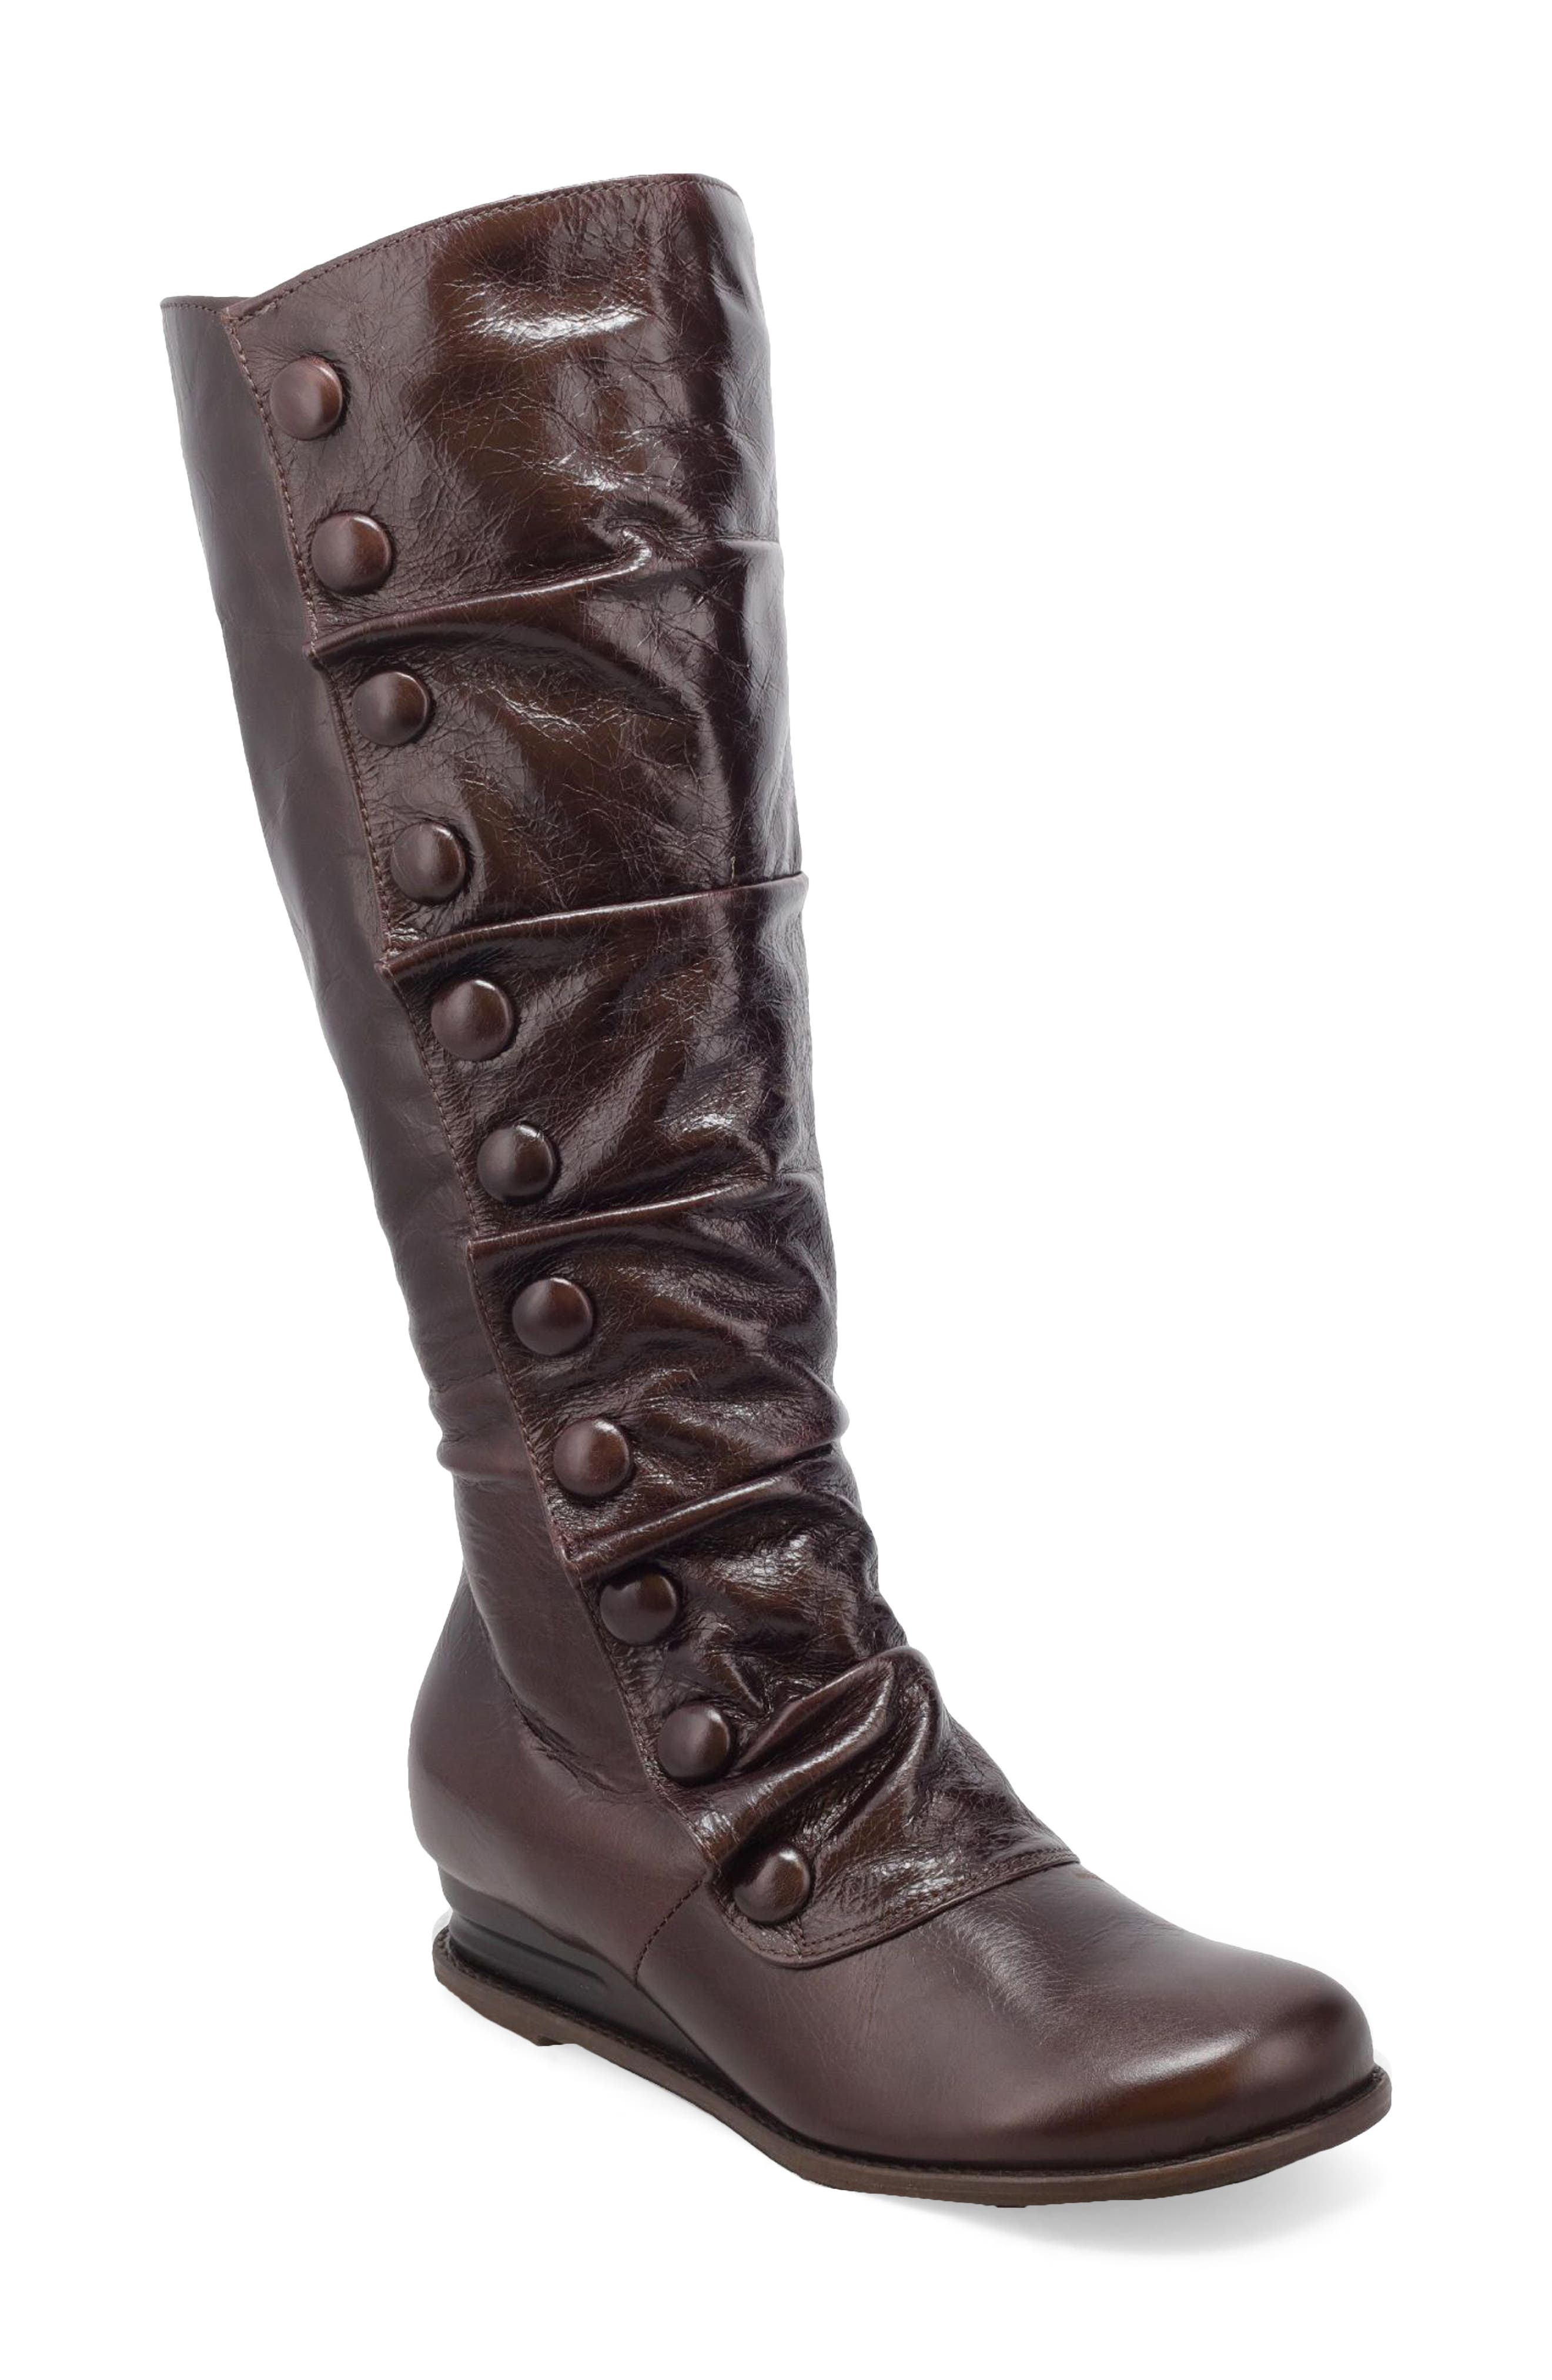 Tonal buttons run down the side of a Victorian-inspired leather boot with a slouchy silhouette, hidden heel and round toe. Style Name: Miz Mooz Bobbie Mid Calf Boot (Women). Style Number: 6110094. Available in stores.